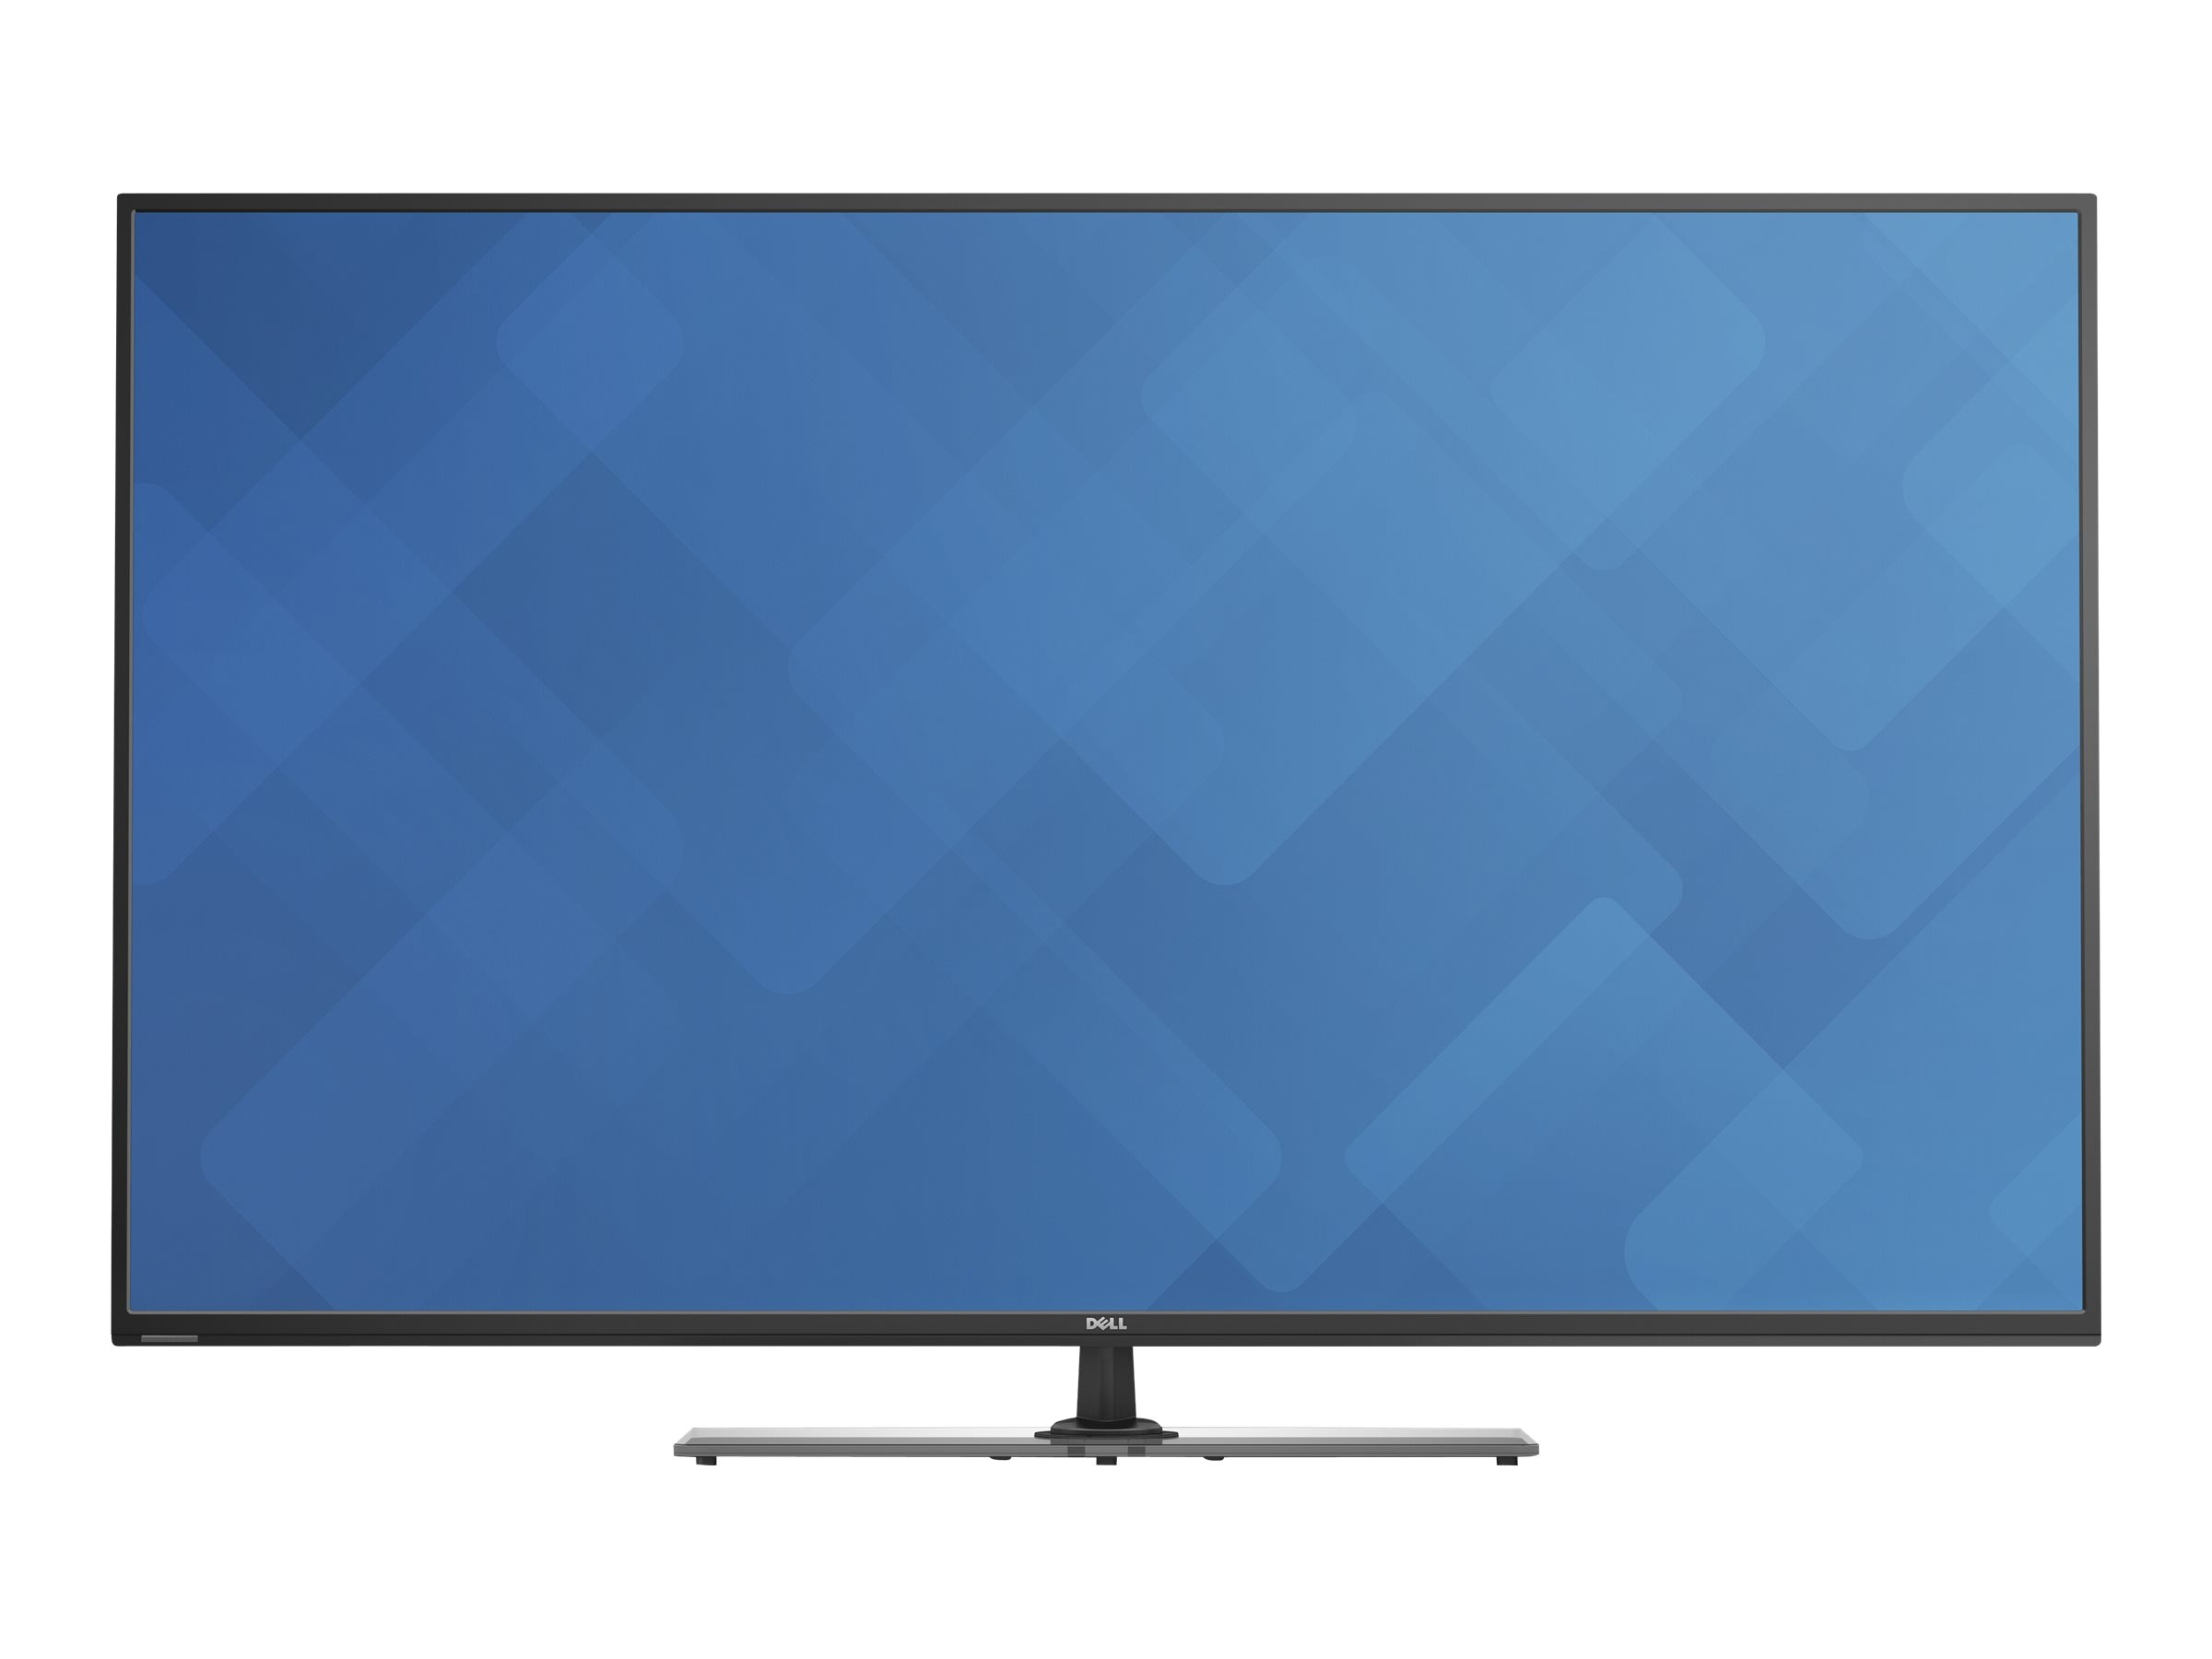 Dell 54.6 E5515H Full HD LED-LCD Monitor, Black, E5515H, 17780365, Monitors - Large-Format LED-LCD